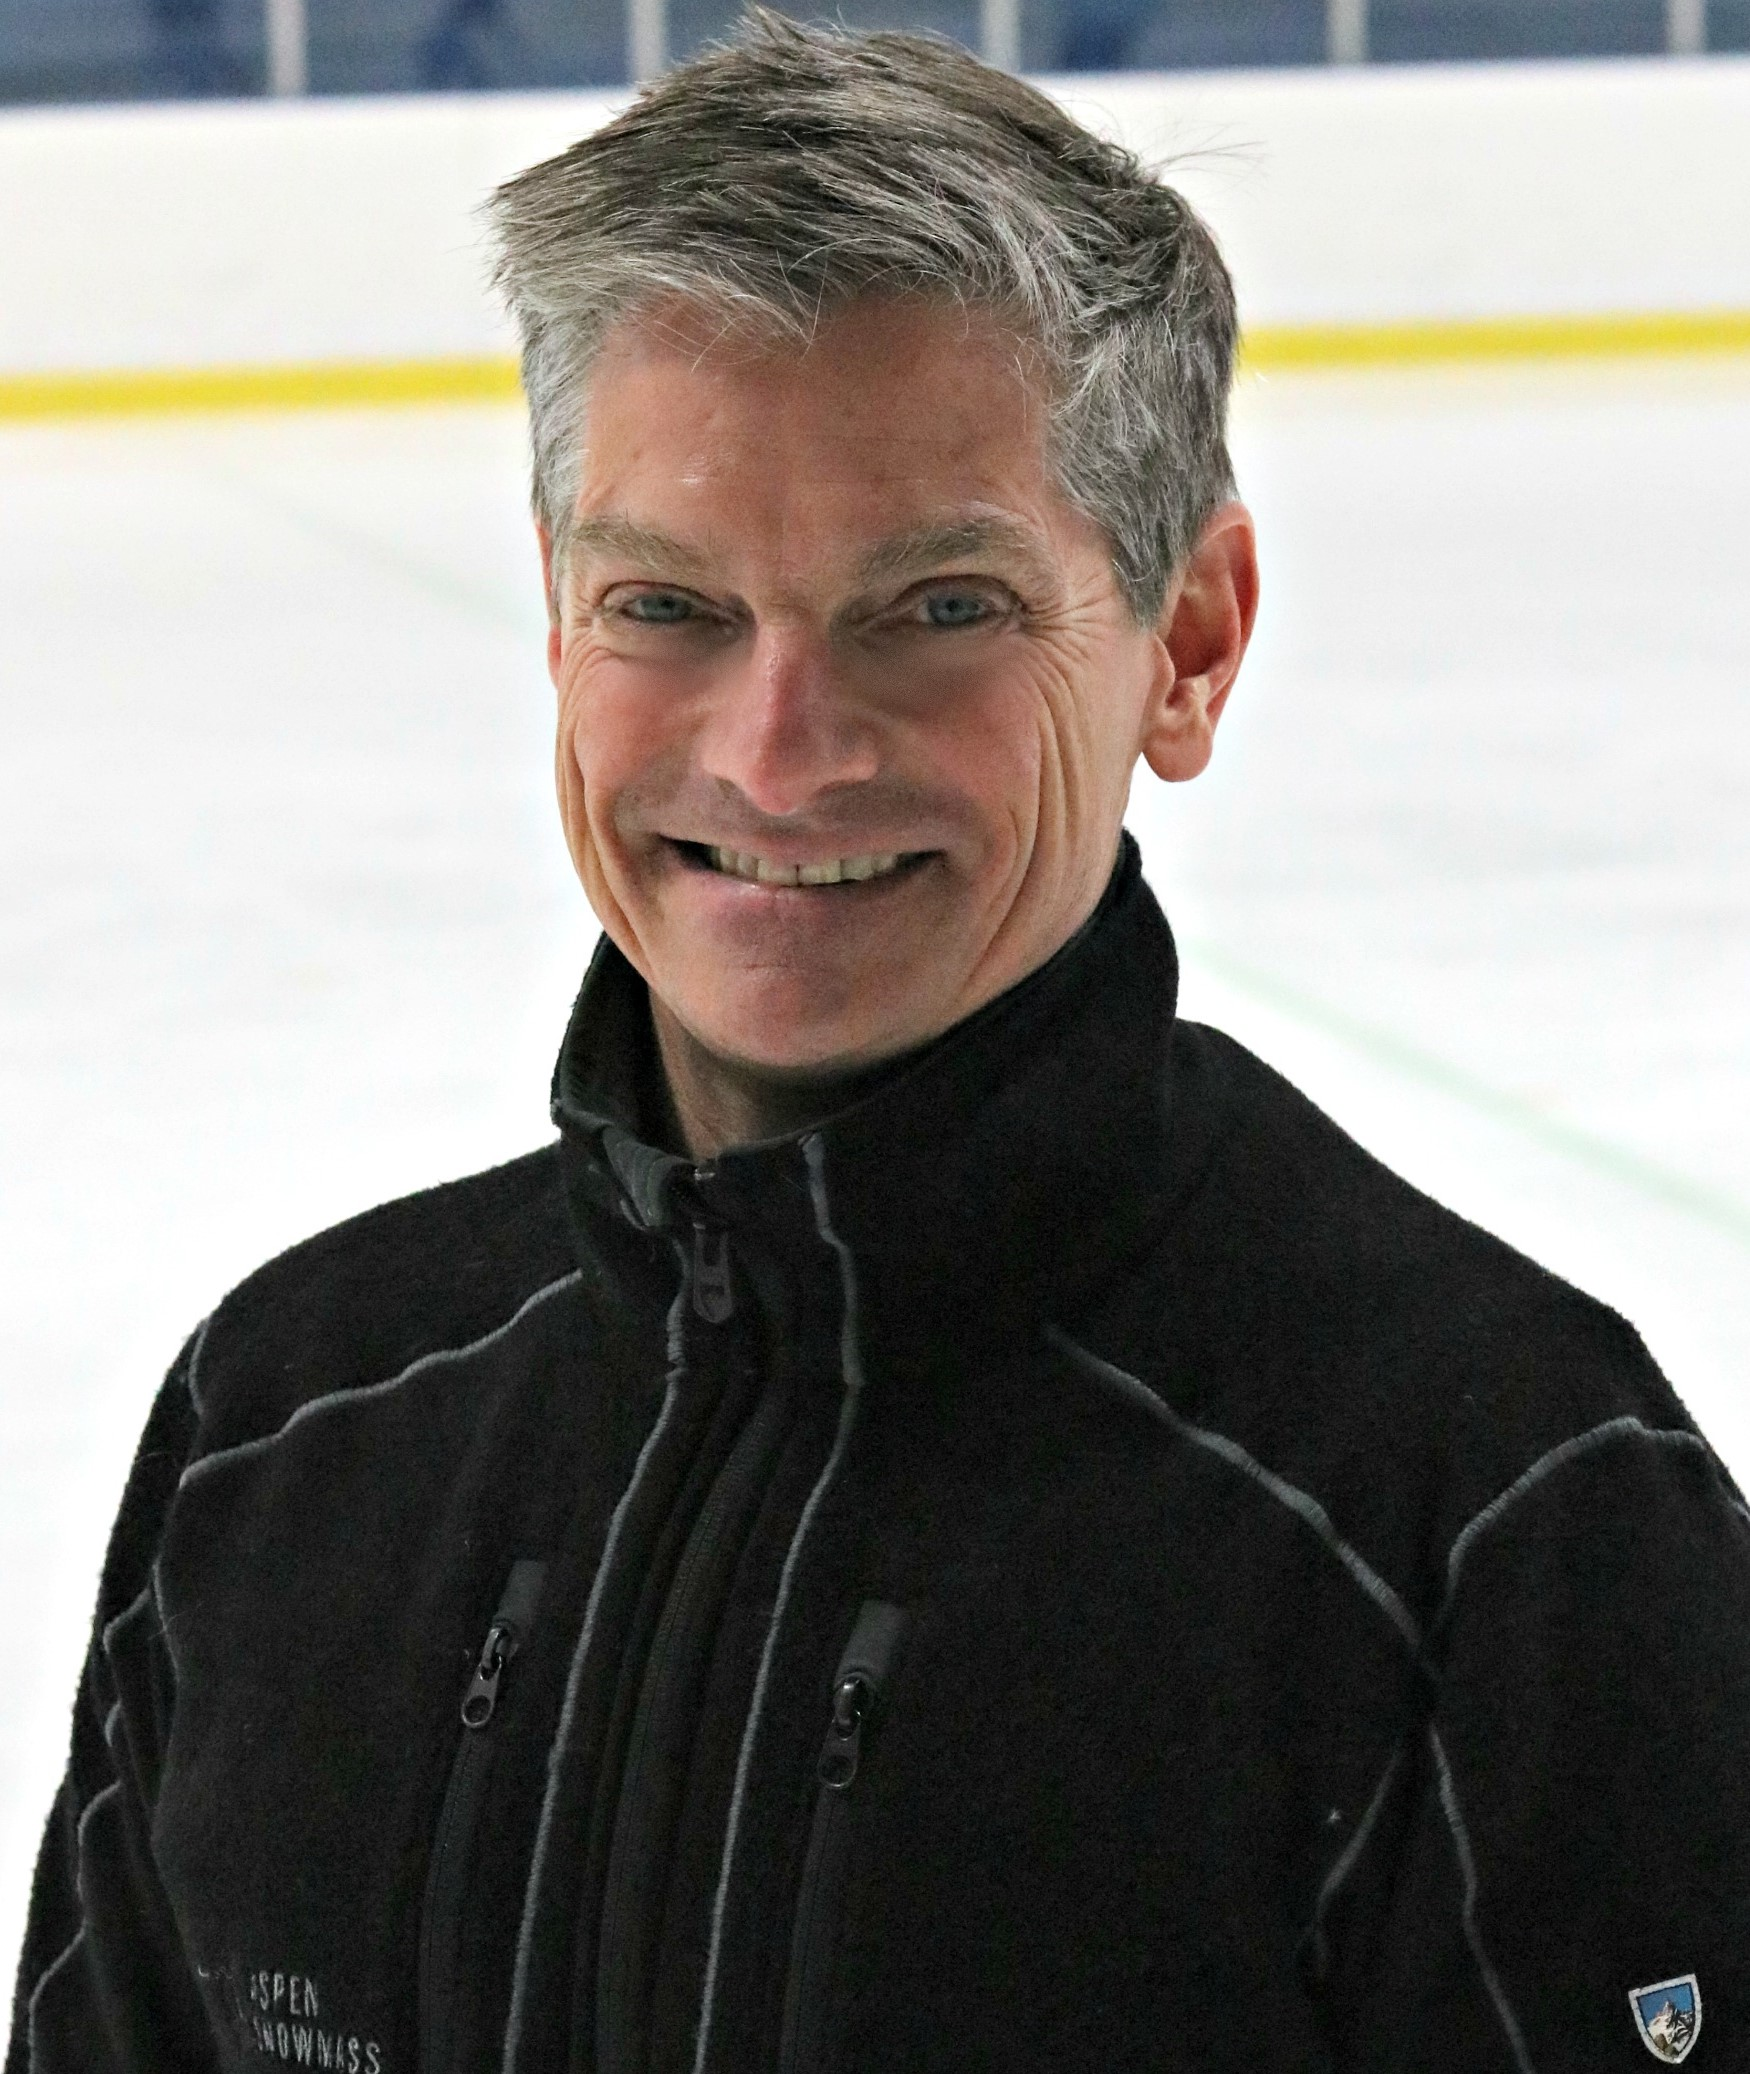 Extreme Ice Center Figure Skating Coach Paul Wylie